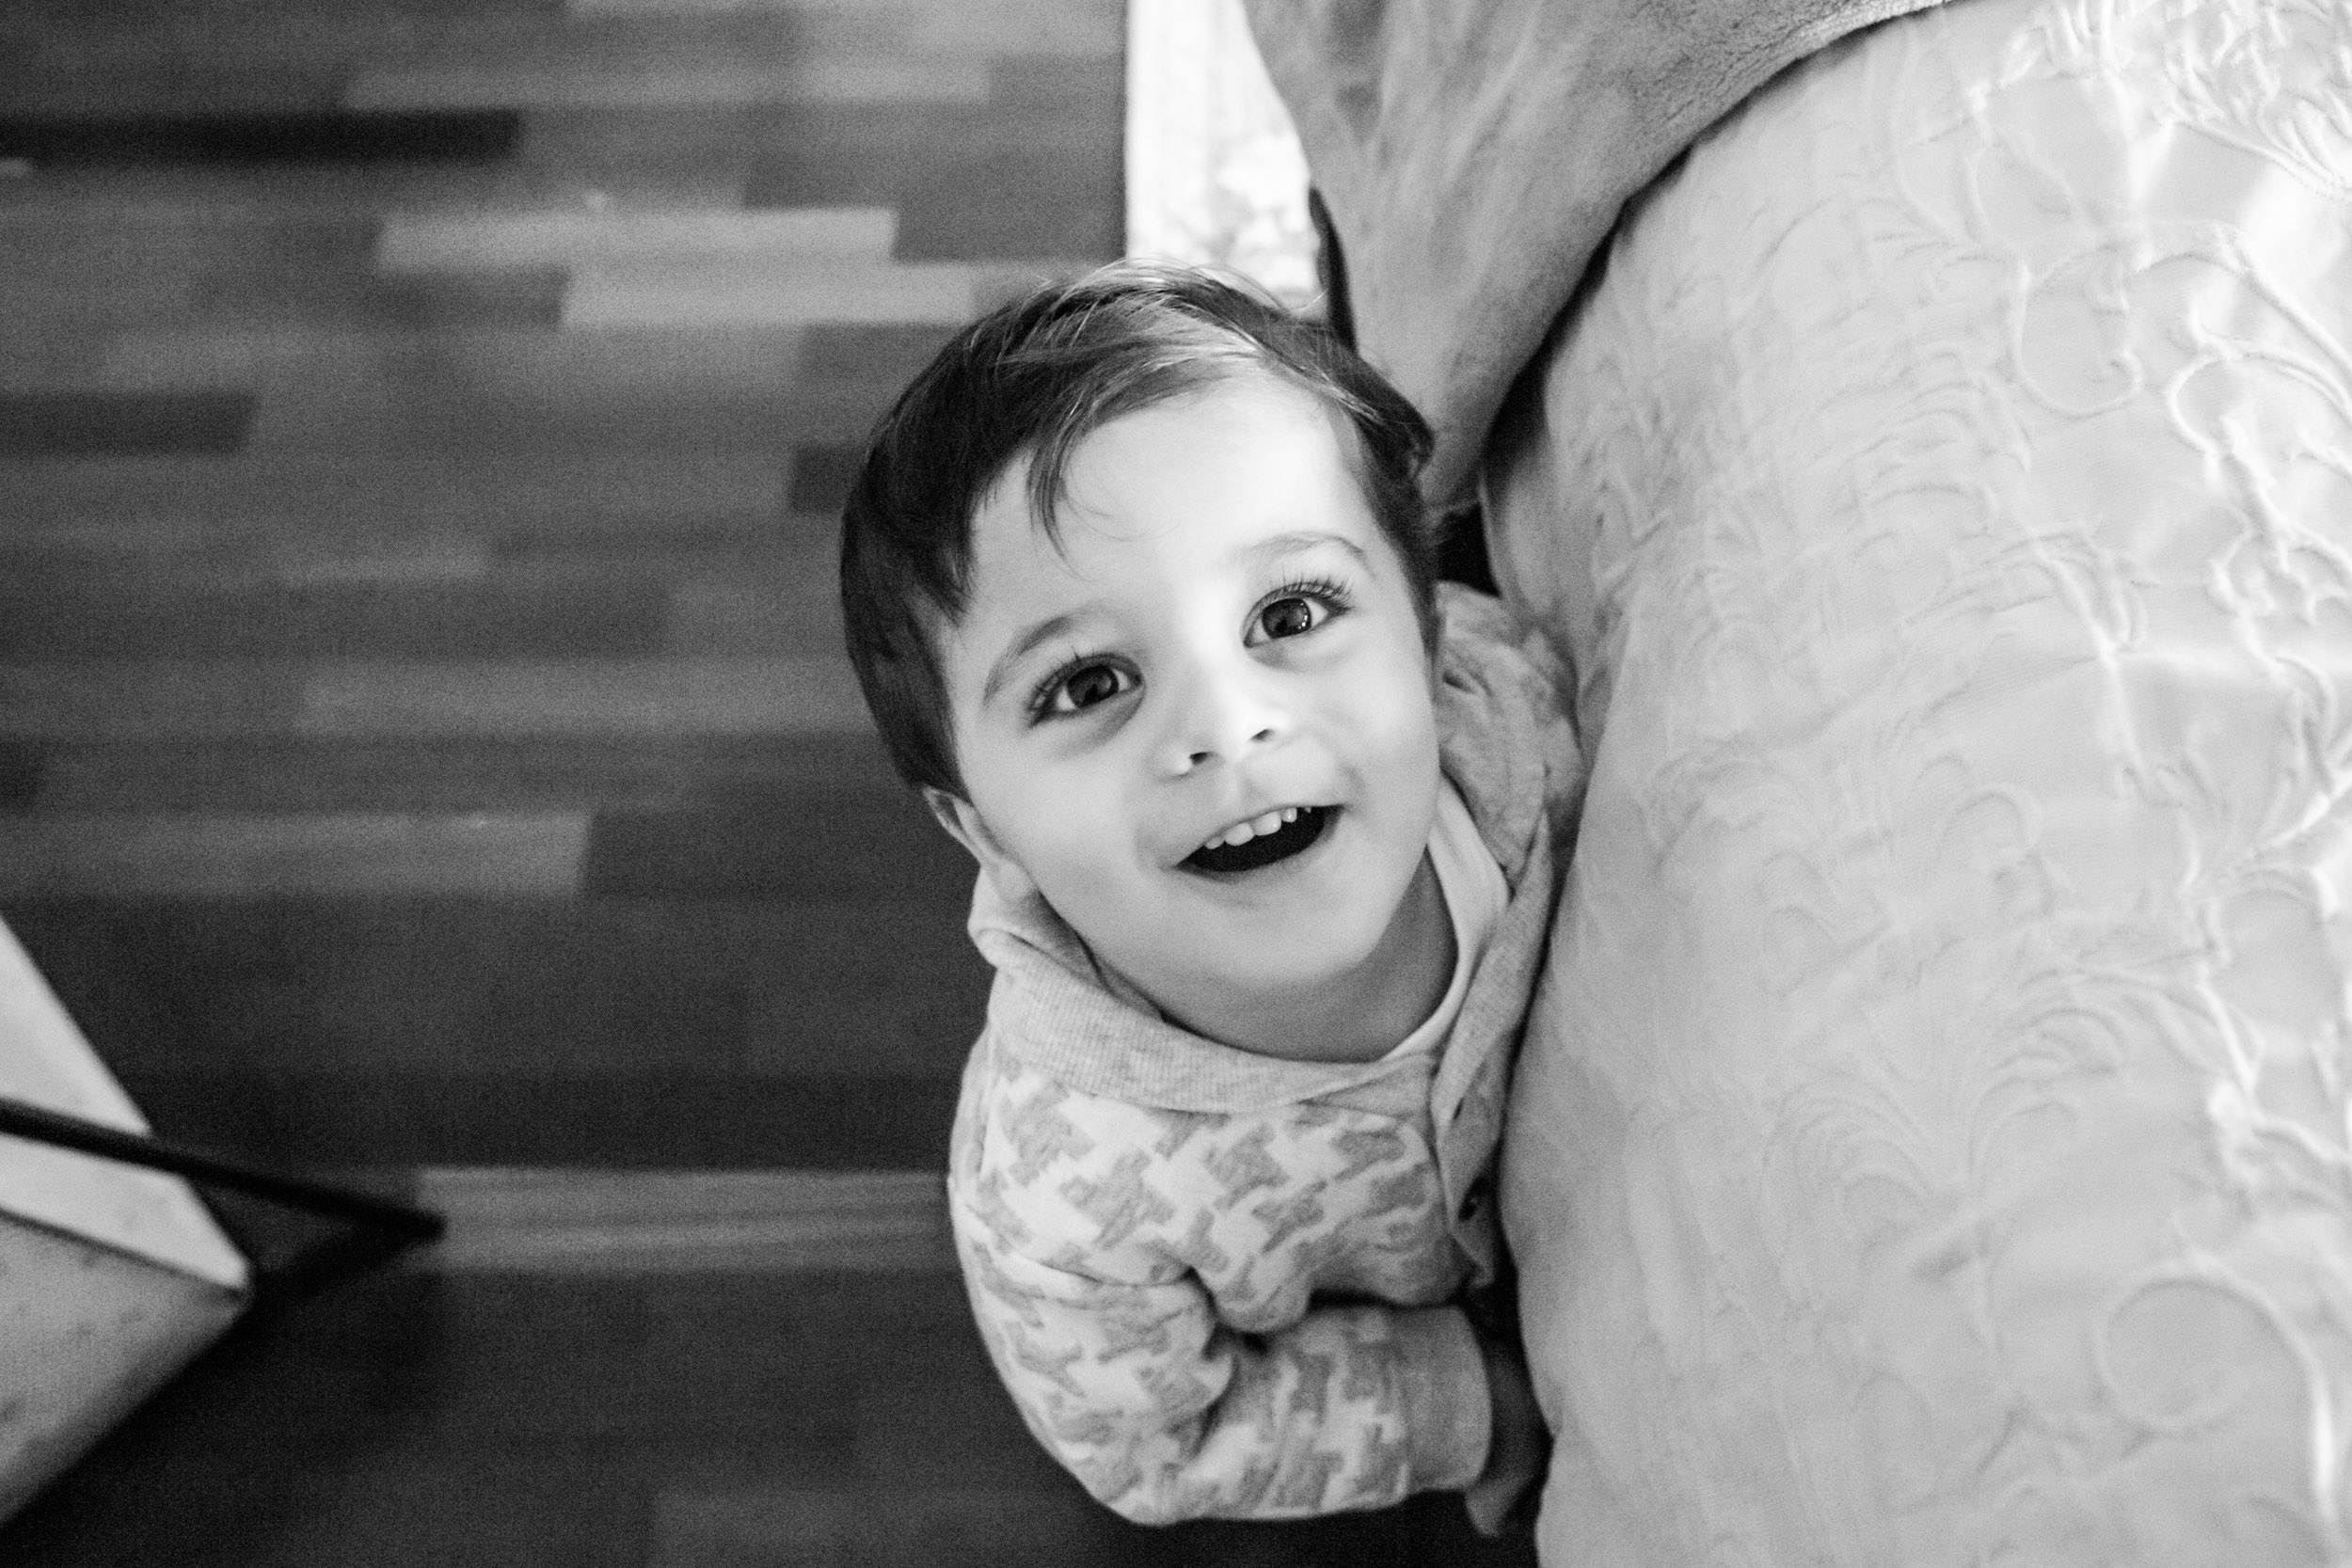 little boy looking up at camera and smiling